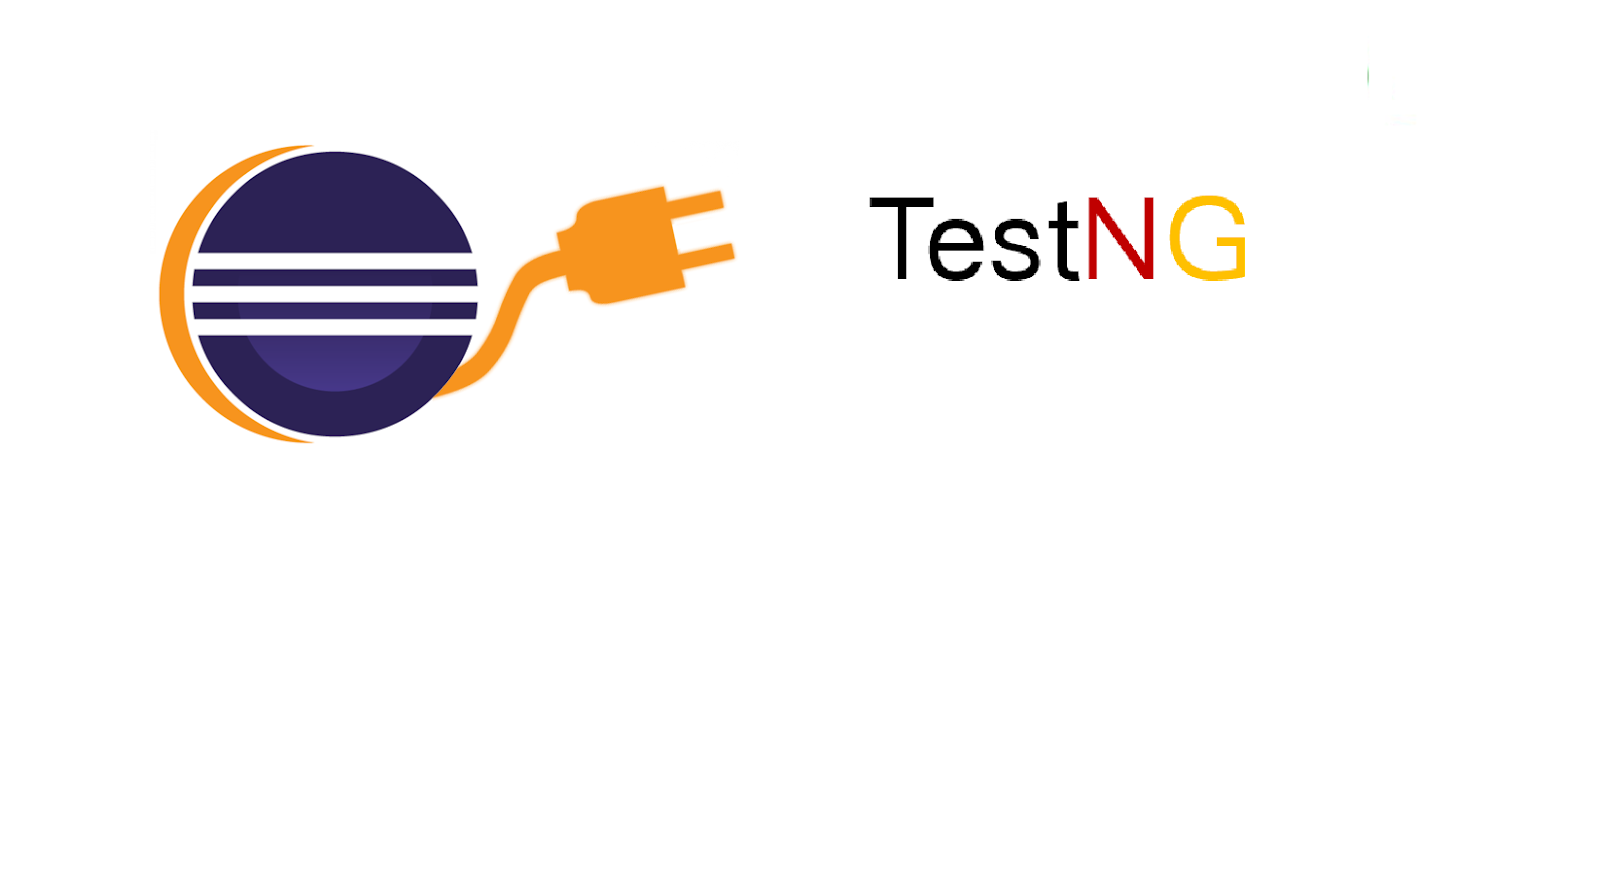 How to install TestNG for Eclipse Plugin